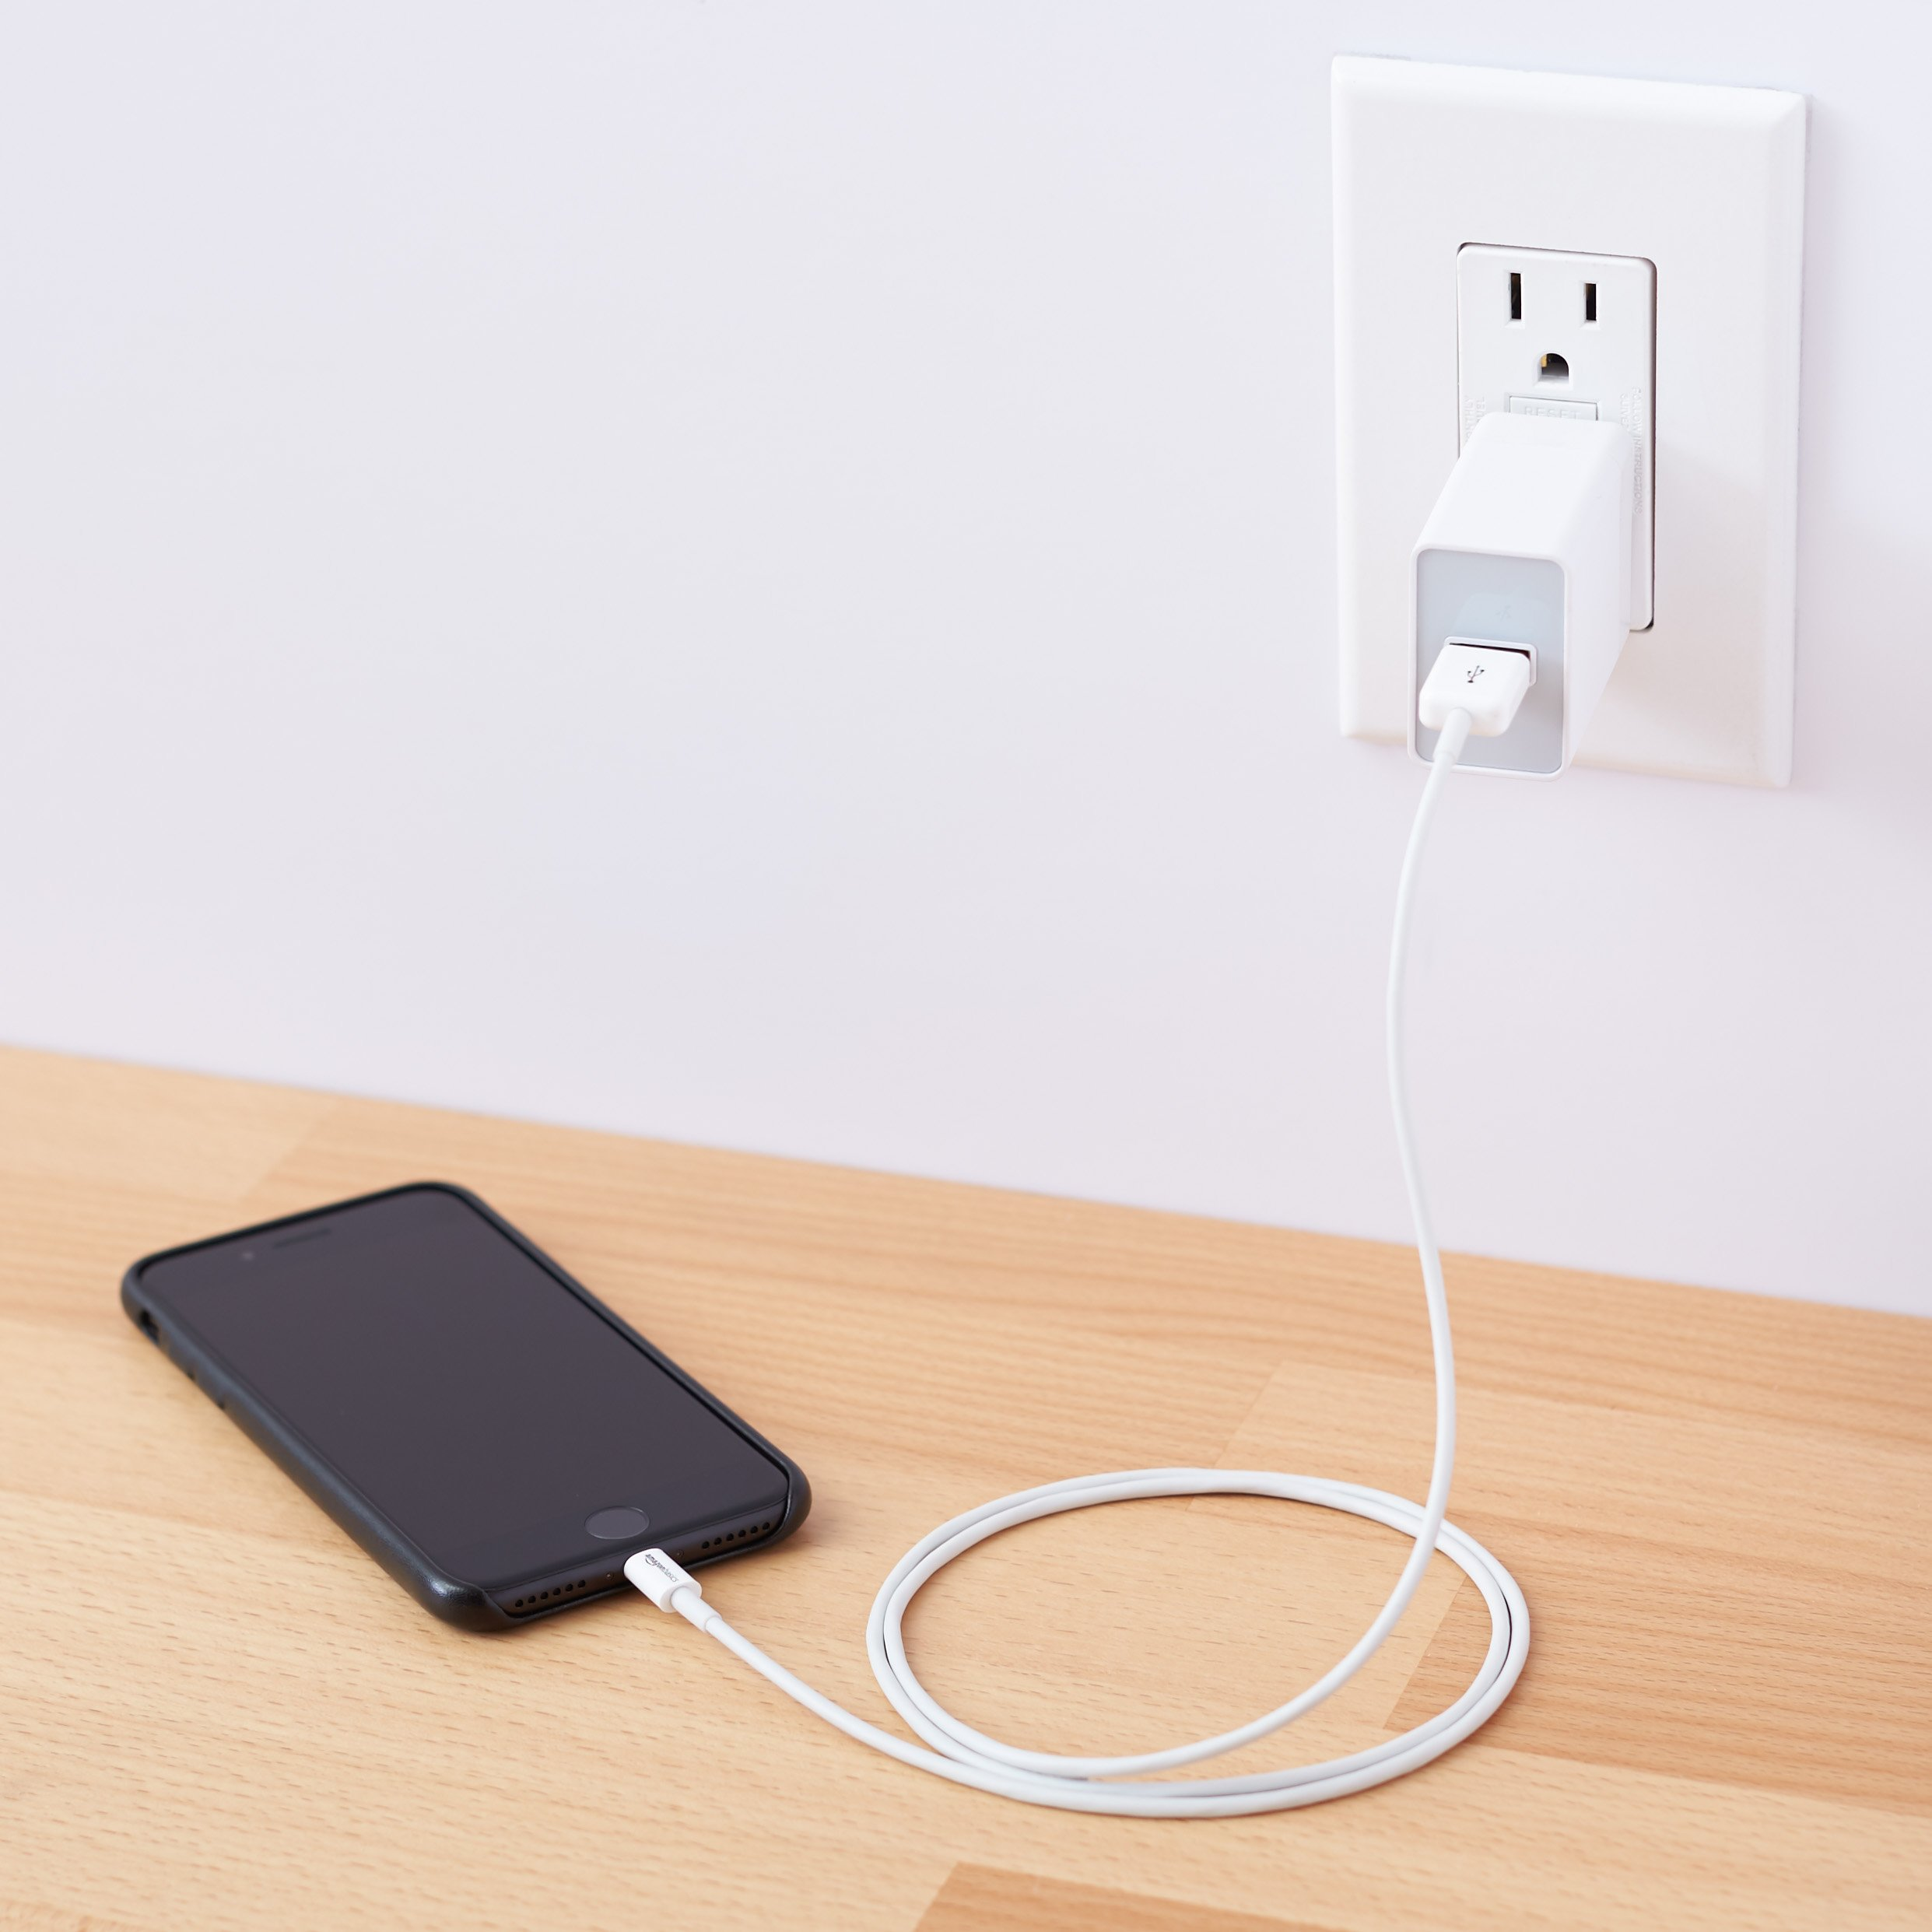 AmazonBasics One-Port USB Wall Charger (12-Watt) Compatible With iPhone and Samsung Phones - White (2-Pack) by AmazonBasics (Image #2)